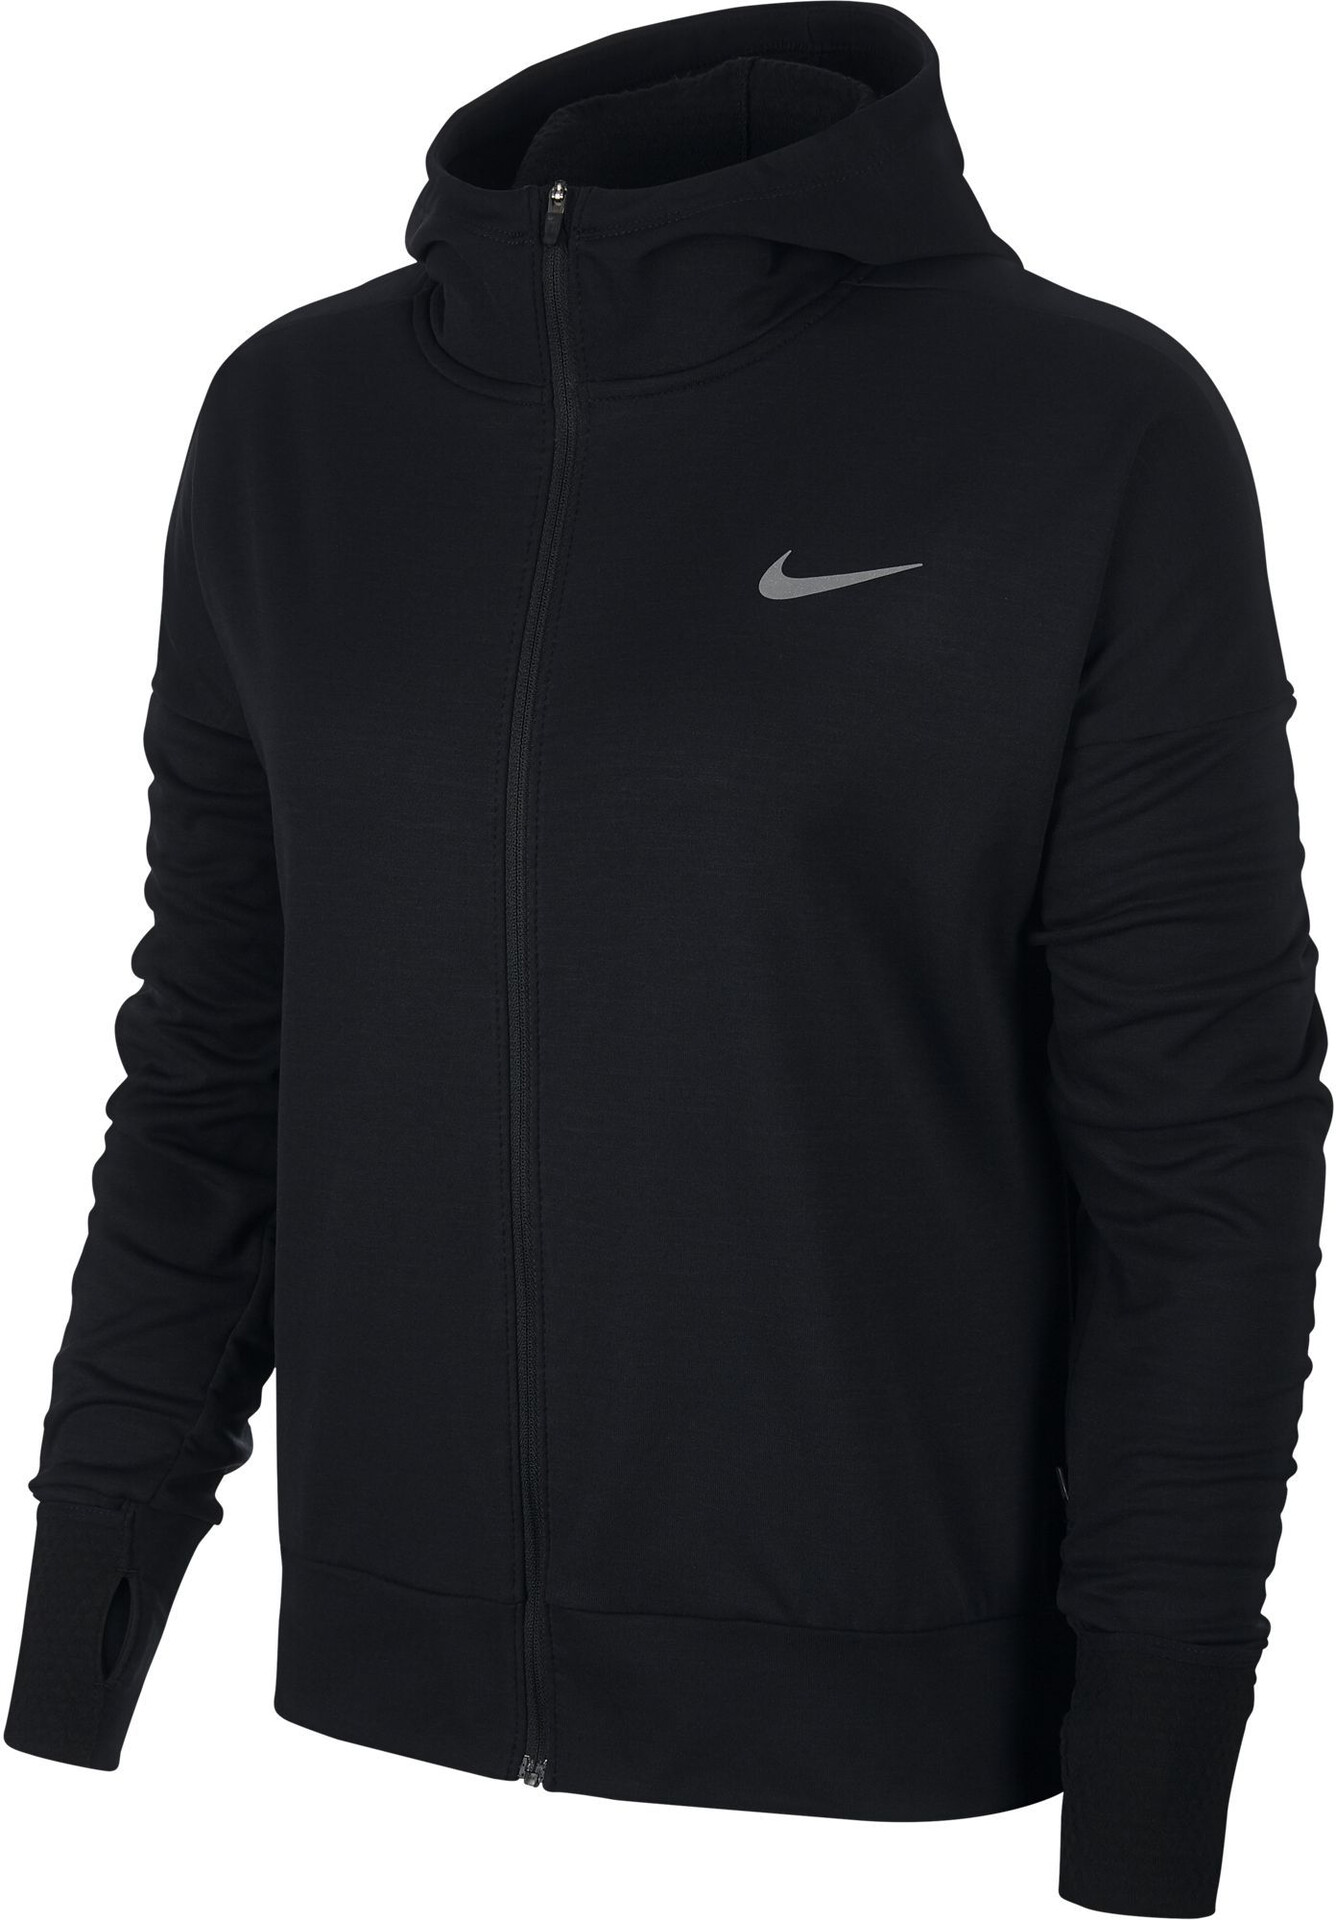 Therma Mujer Sphere Nike Chaqueta Running Negro Element yvYgb7f6